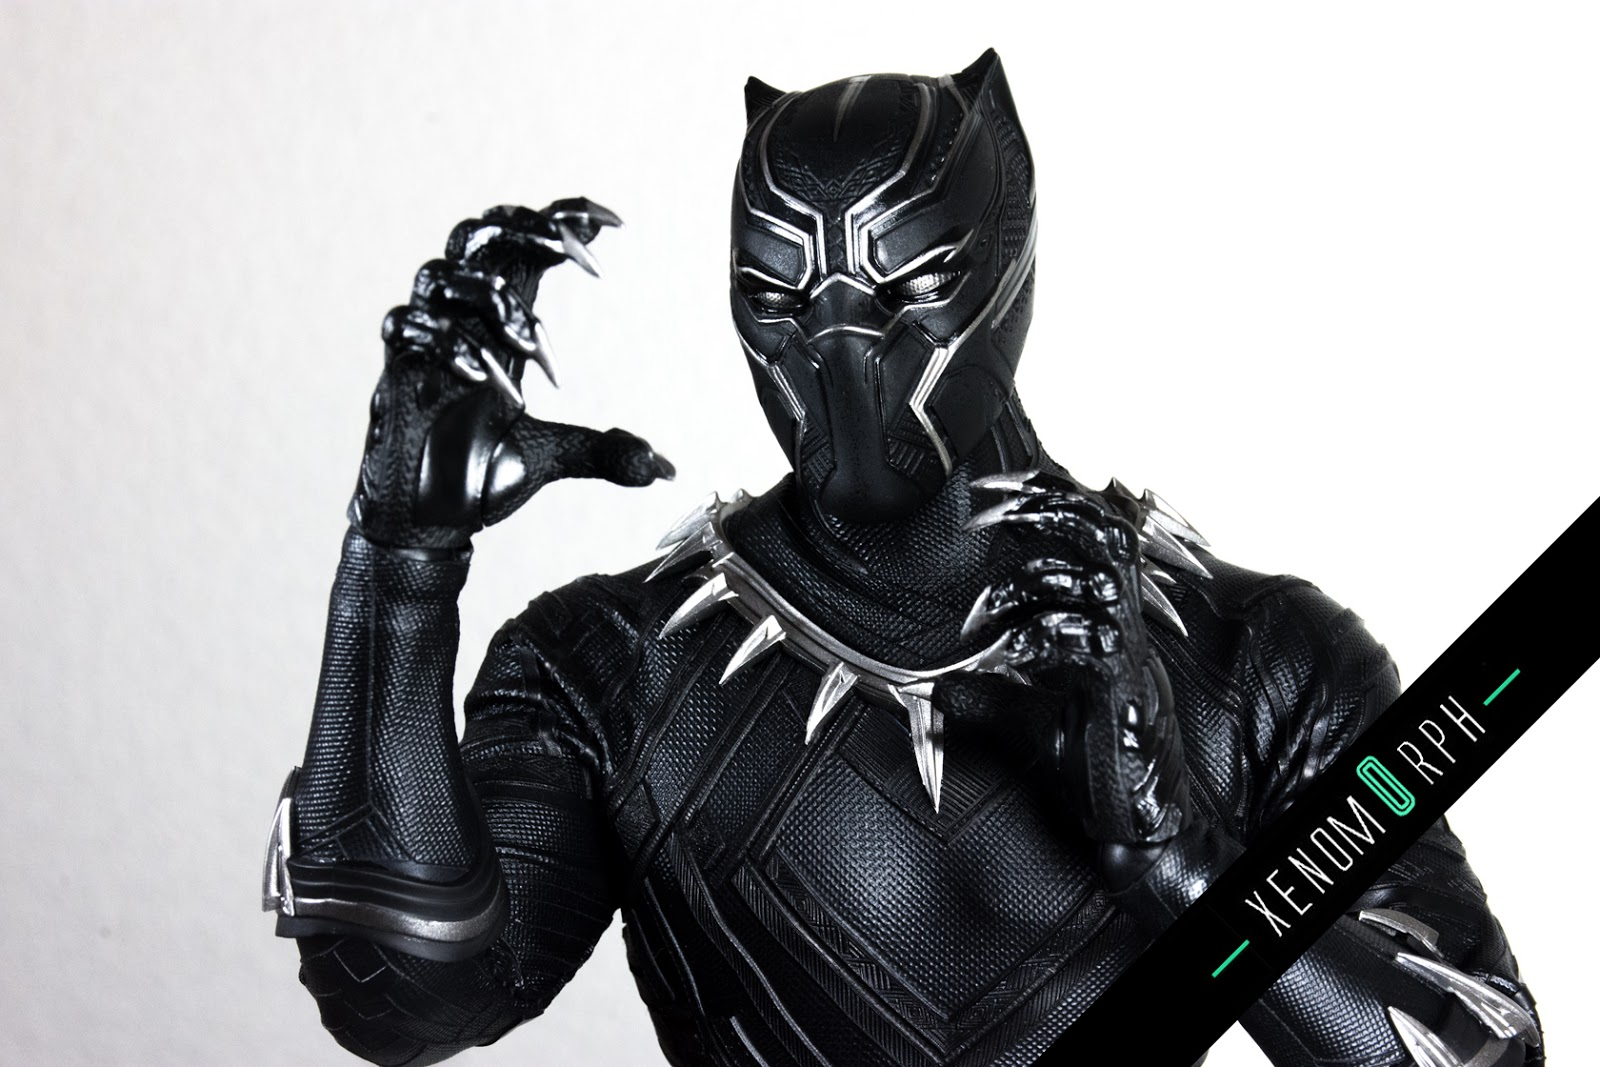 black panther essays The black panther star told howard university students in his commencement address on saturday that he was torn about a soap opera part that he played early in his career being cast as a young black man from a broken family who gets lured into a gang.